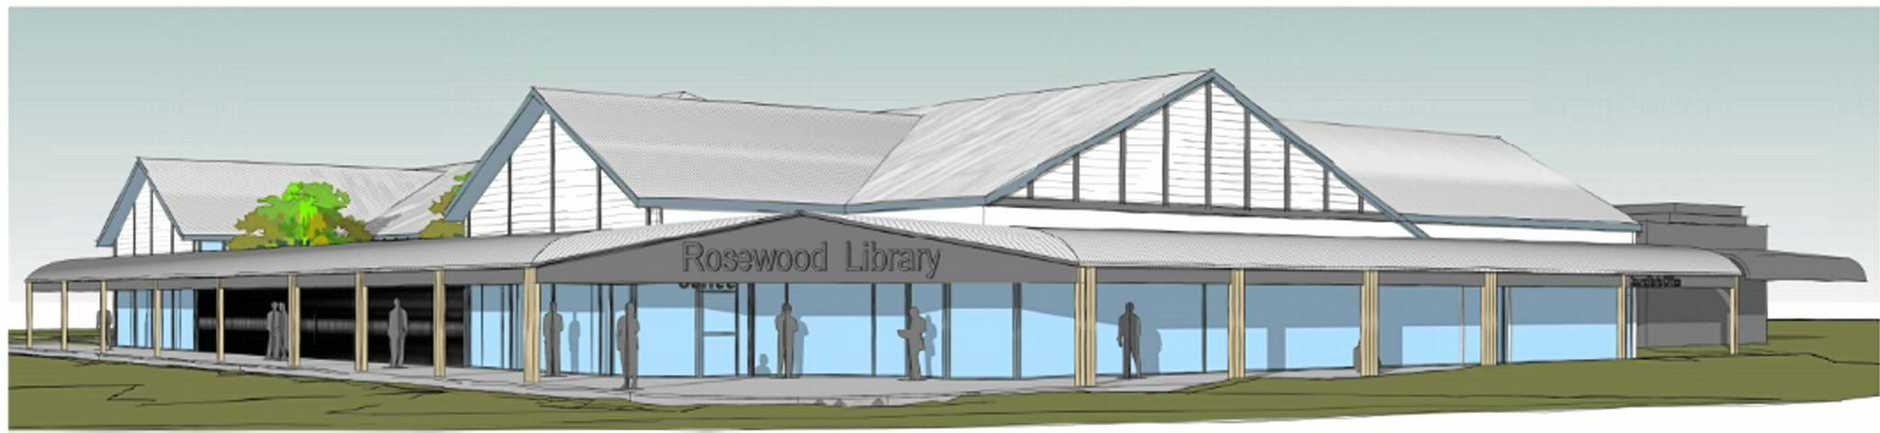 A new library for Rosewood is a step closer with $300,000 set aside for building design in the 2016/17 budget.